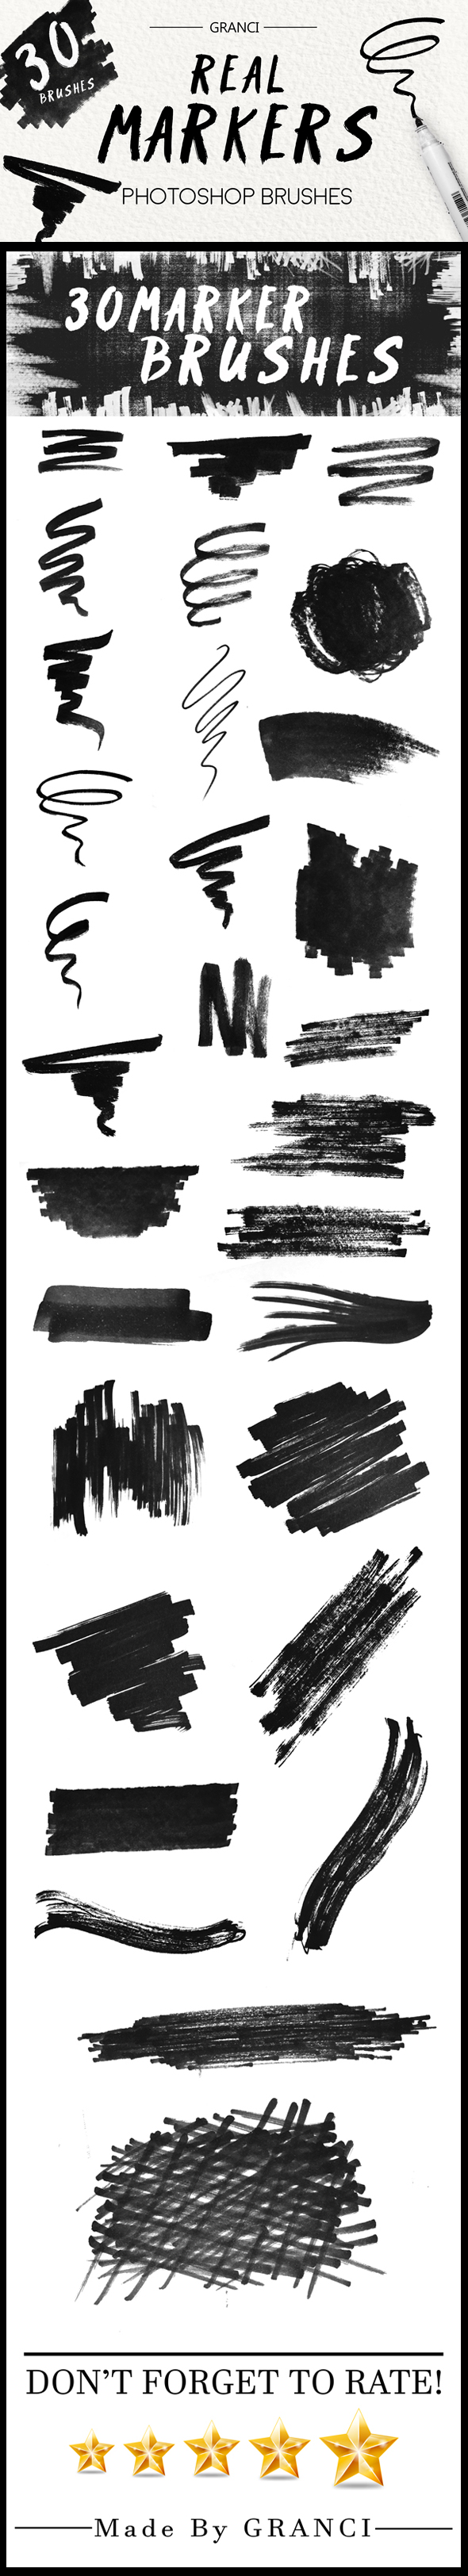 30 Real Marker Brushes - Artistic Brushes